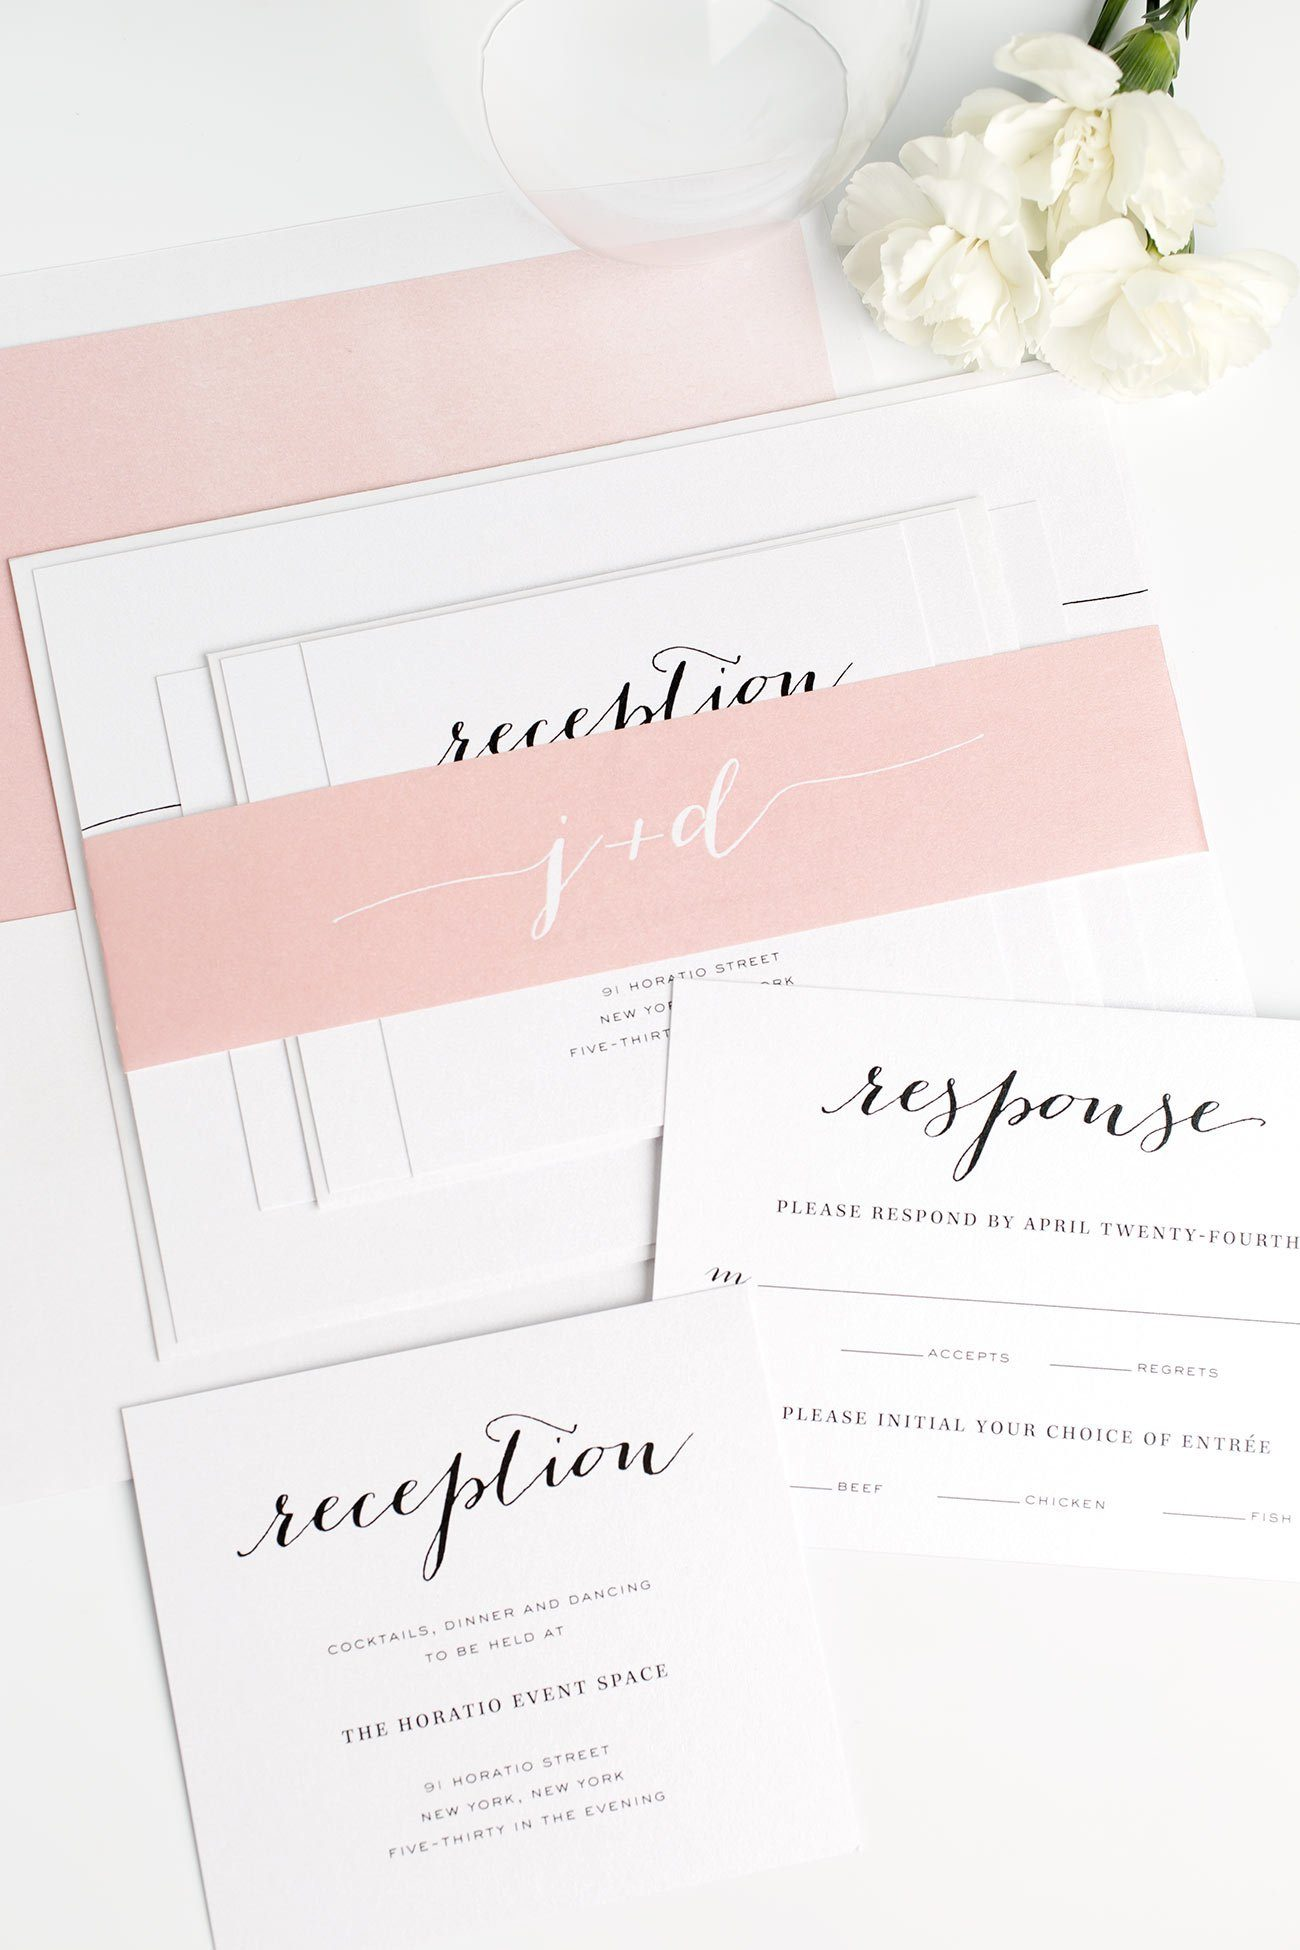 Calligraphy Wedding Invitations with a Watercolor Envelope Liner in a Pretty Pink